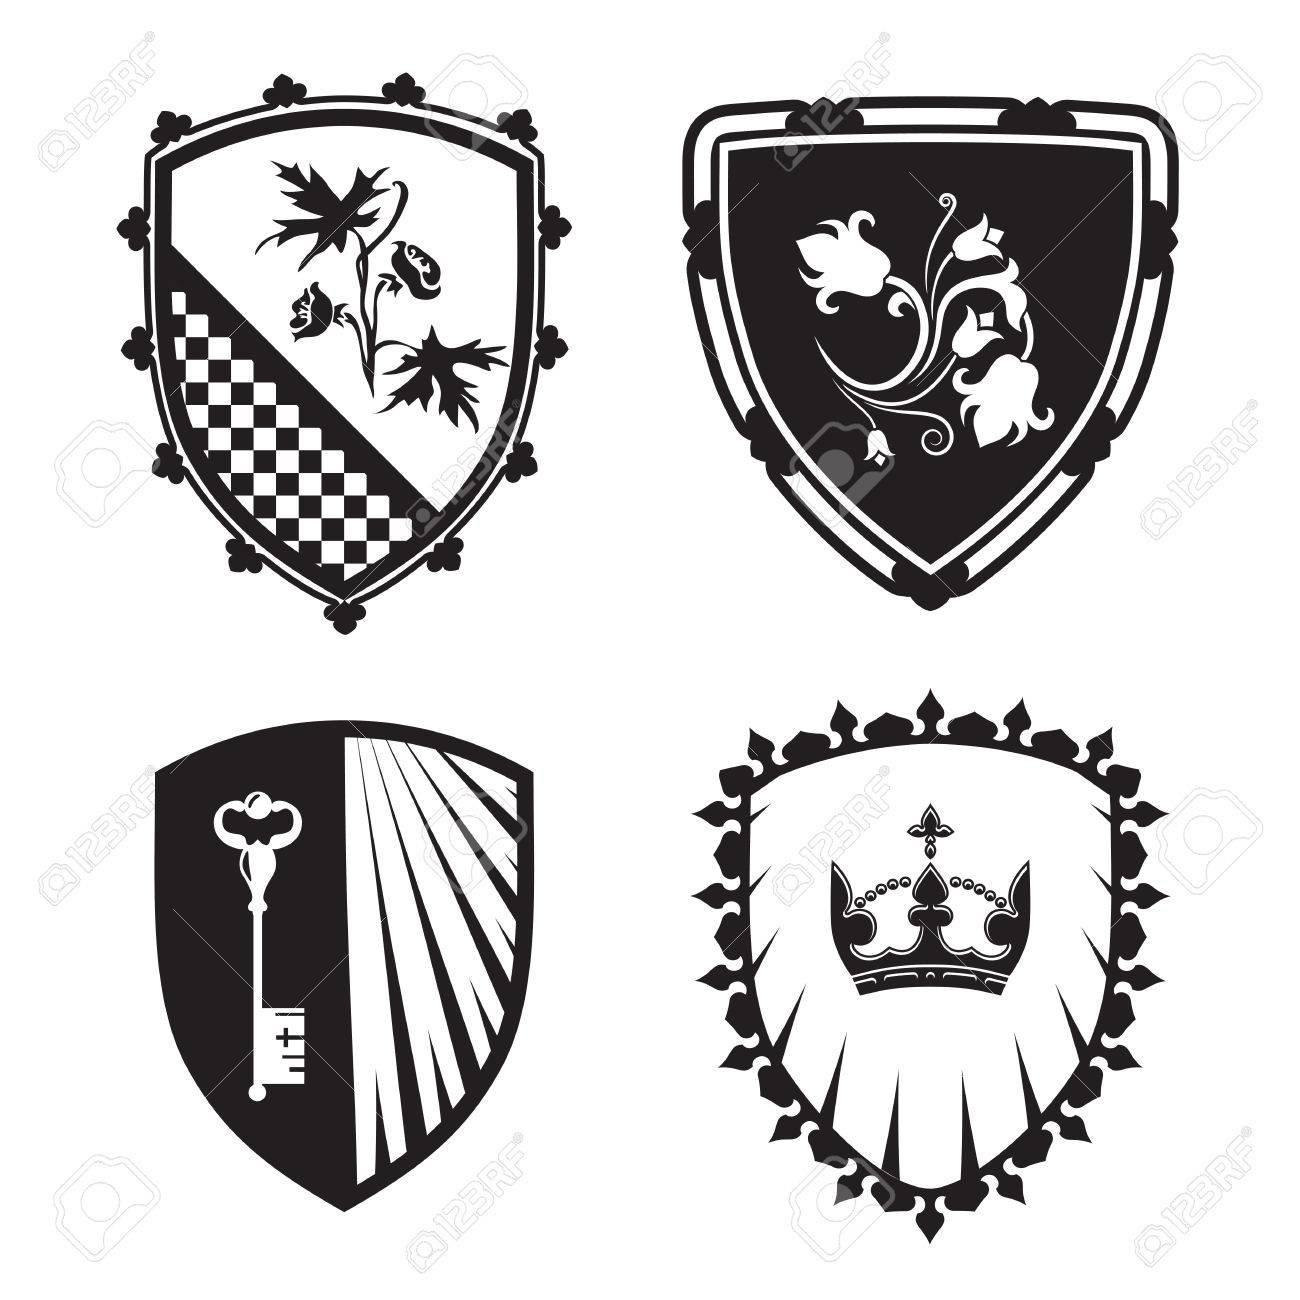 Coat Of Arms Shield Silhouettes With Crown Key Flowers For